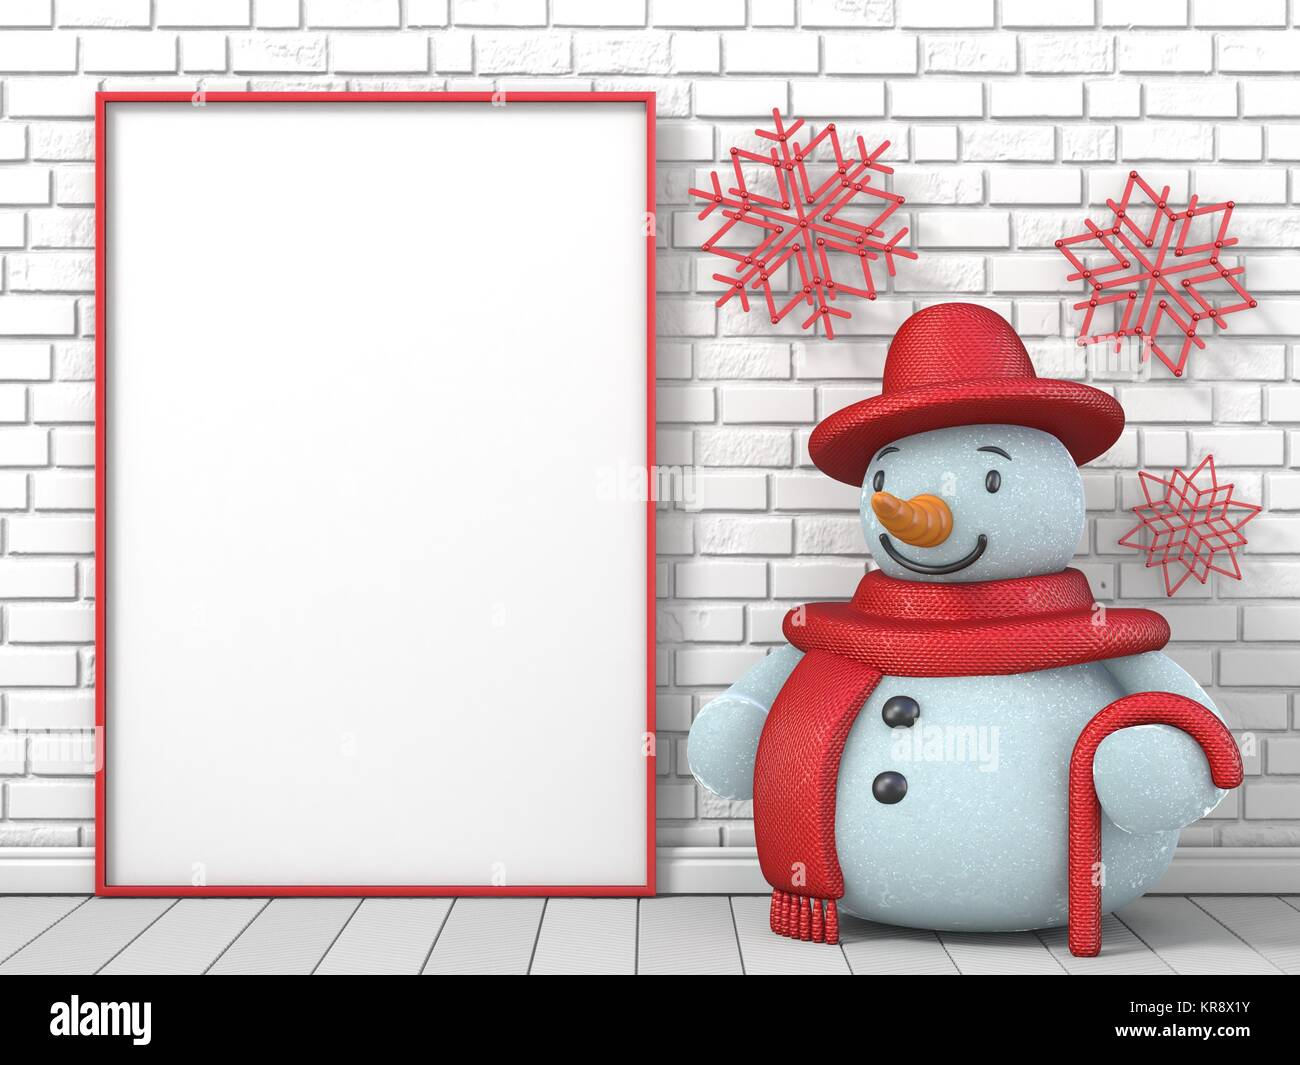 Mock up blank picture frame, Snowman and red popsicle sticks Stock ...